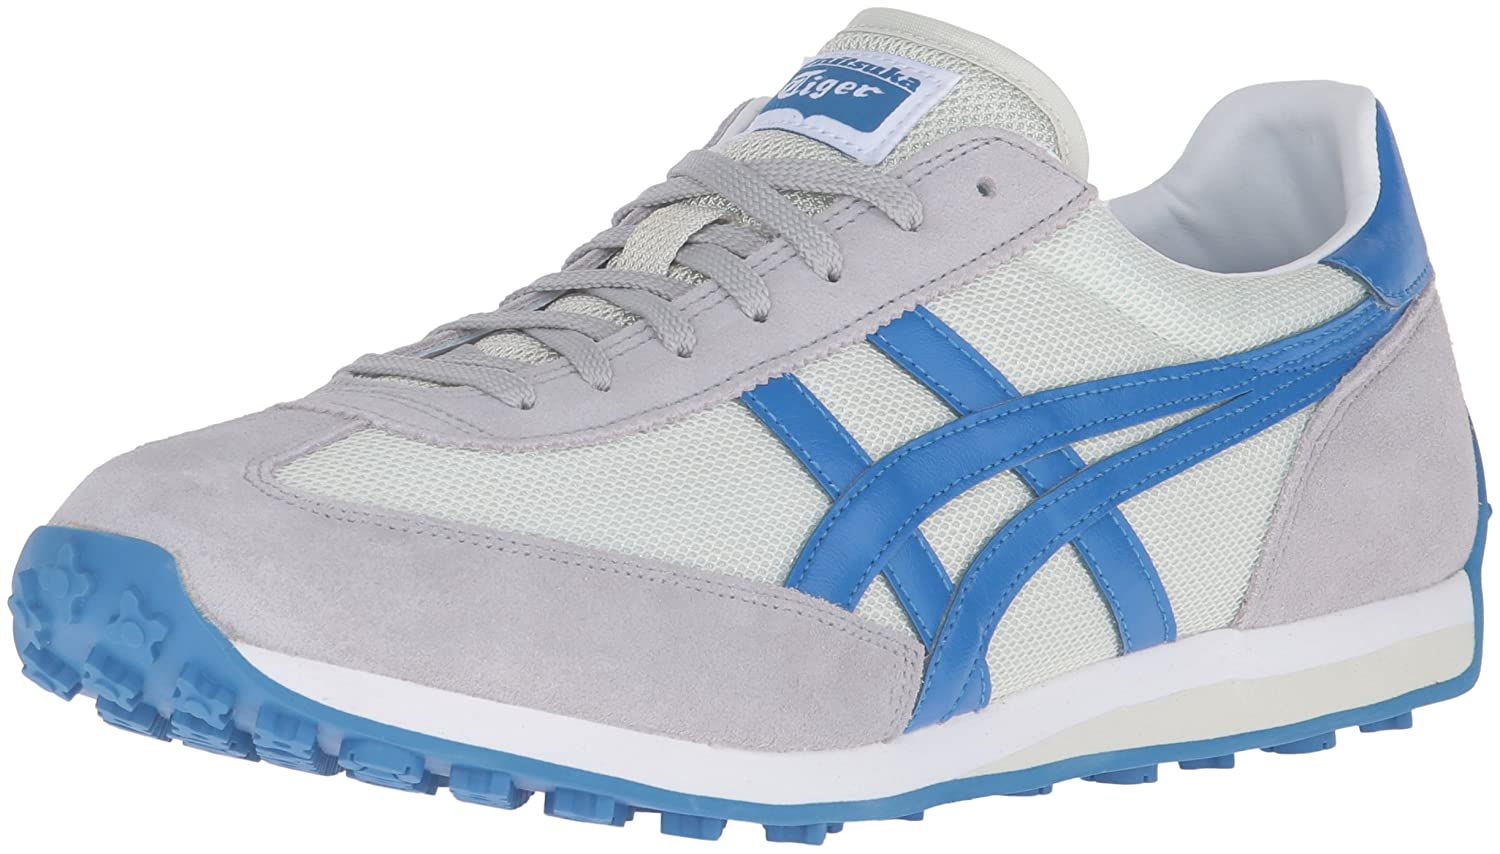 Onitsuka Tiger Men's Edr 78 Fashion Sneaker